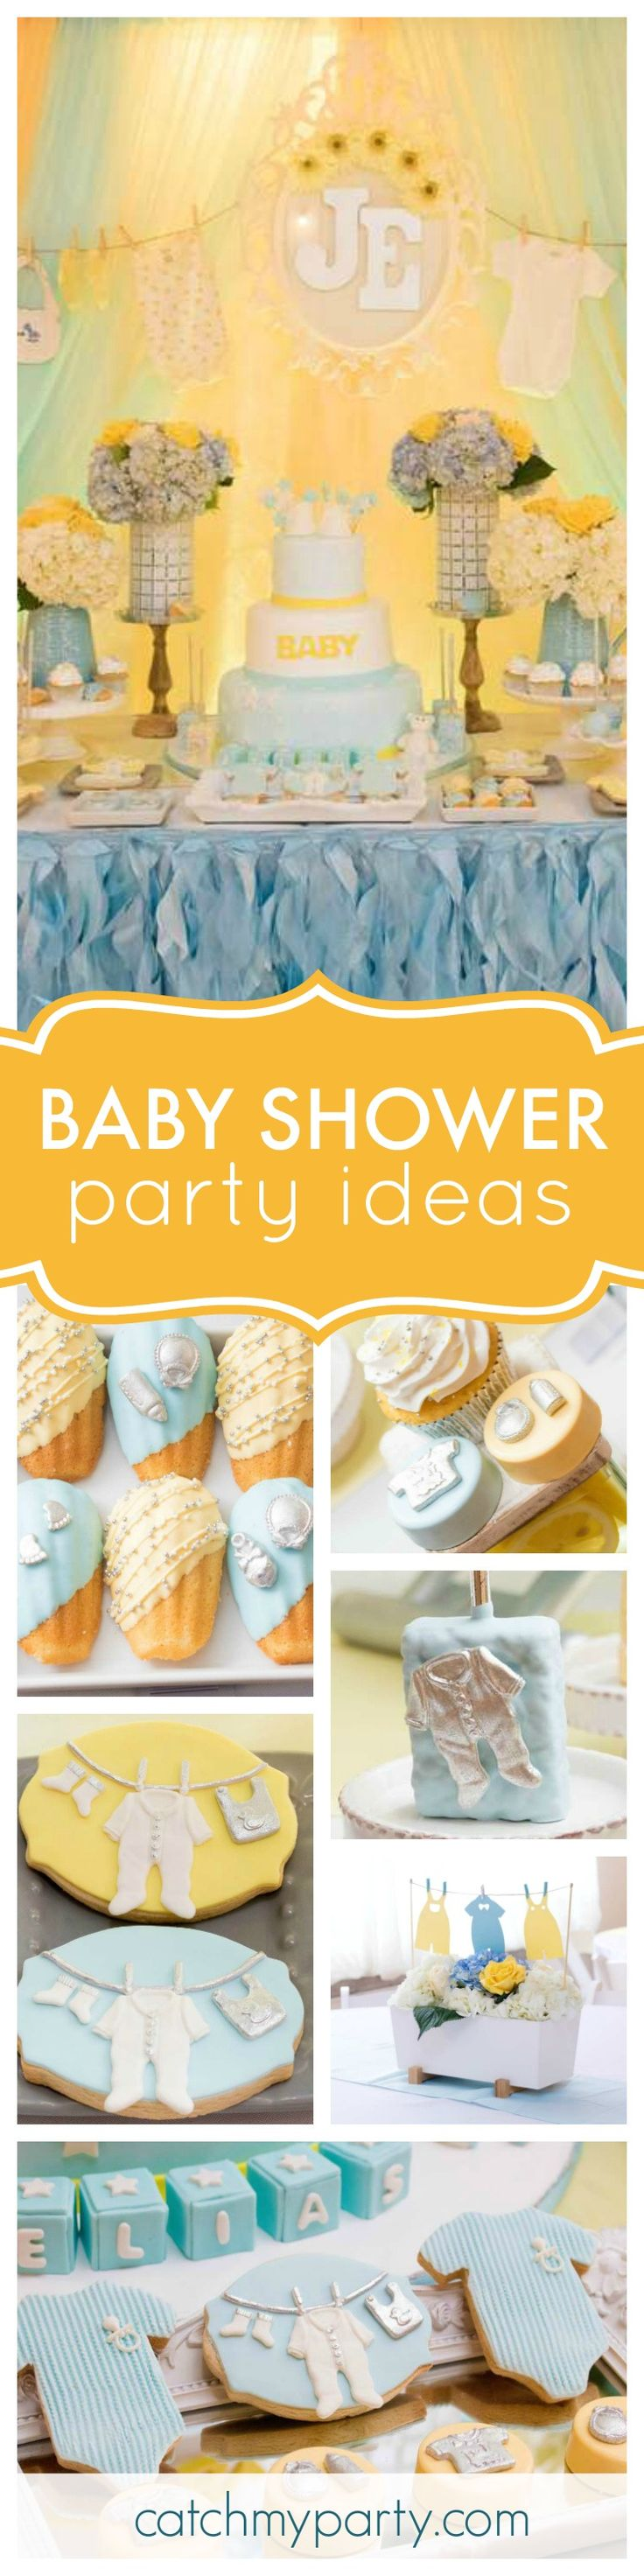 about baby shower clothesline on pinterest minnie mouse baby shower